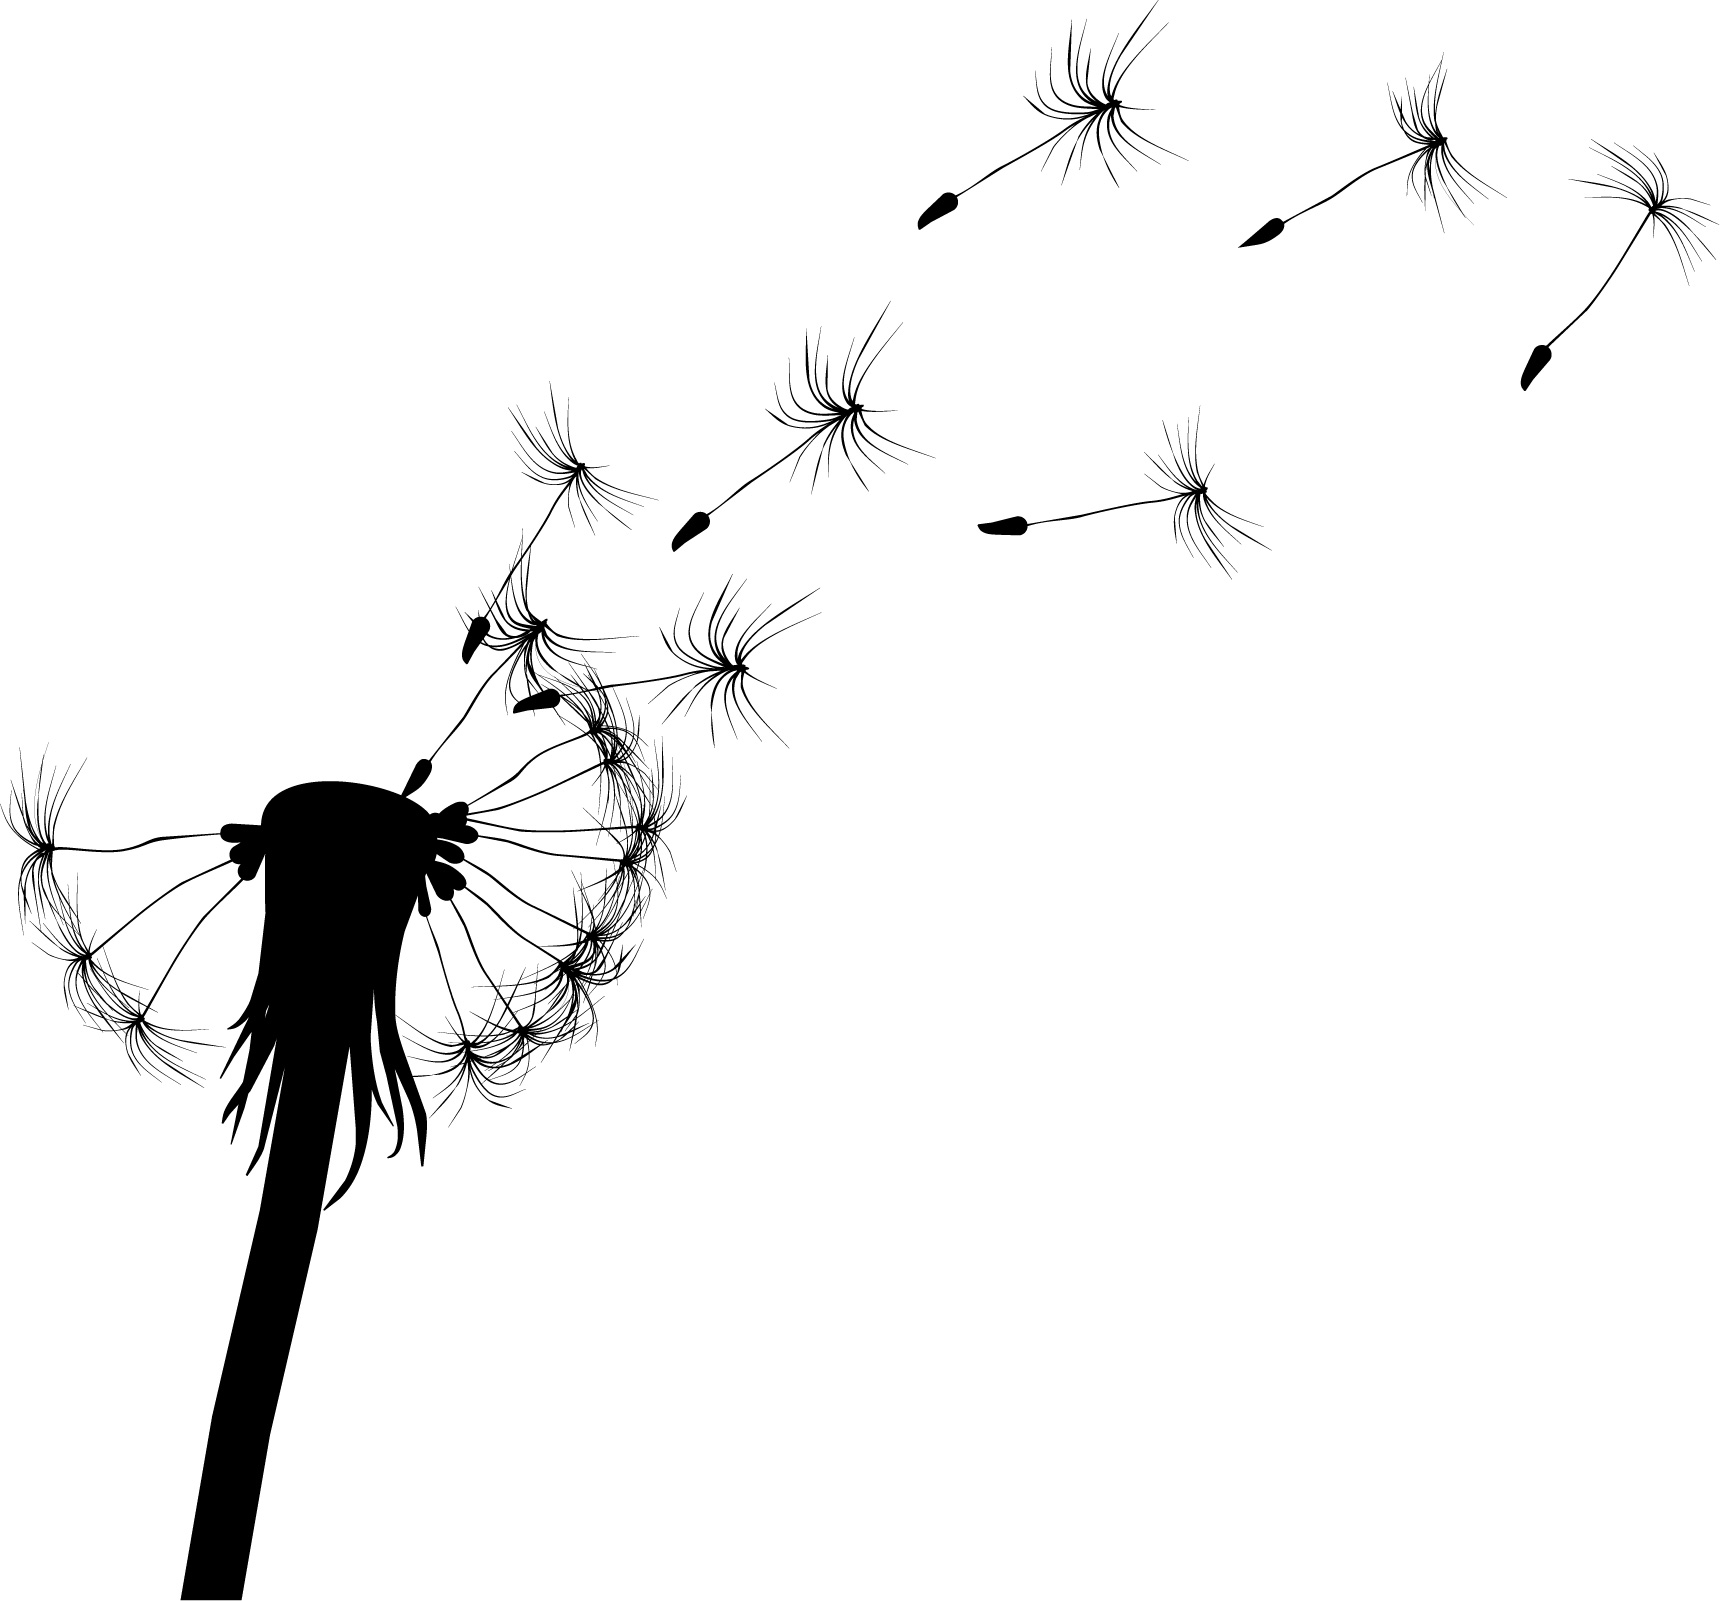 dandelion silhouette vector free at getdrawings com free for rh getdrawings com dandelion vector art dandelion vector artwork